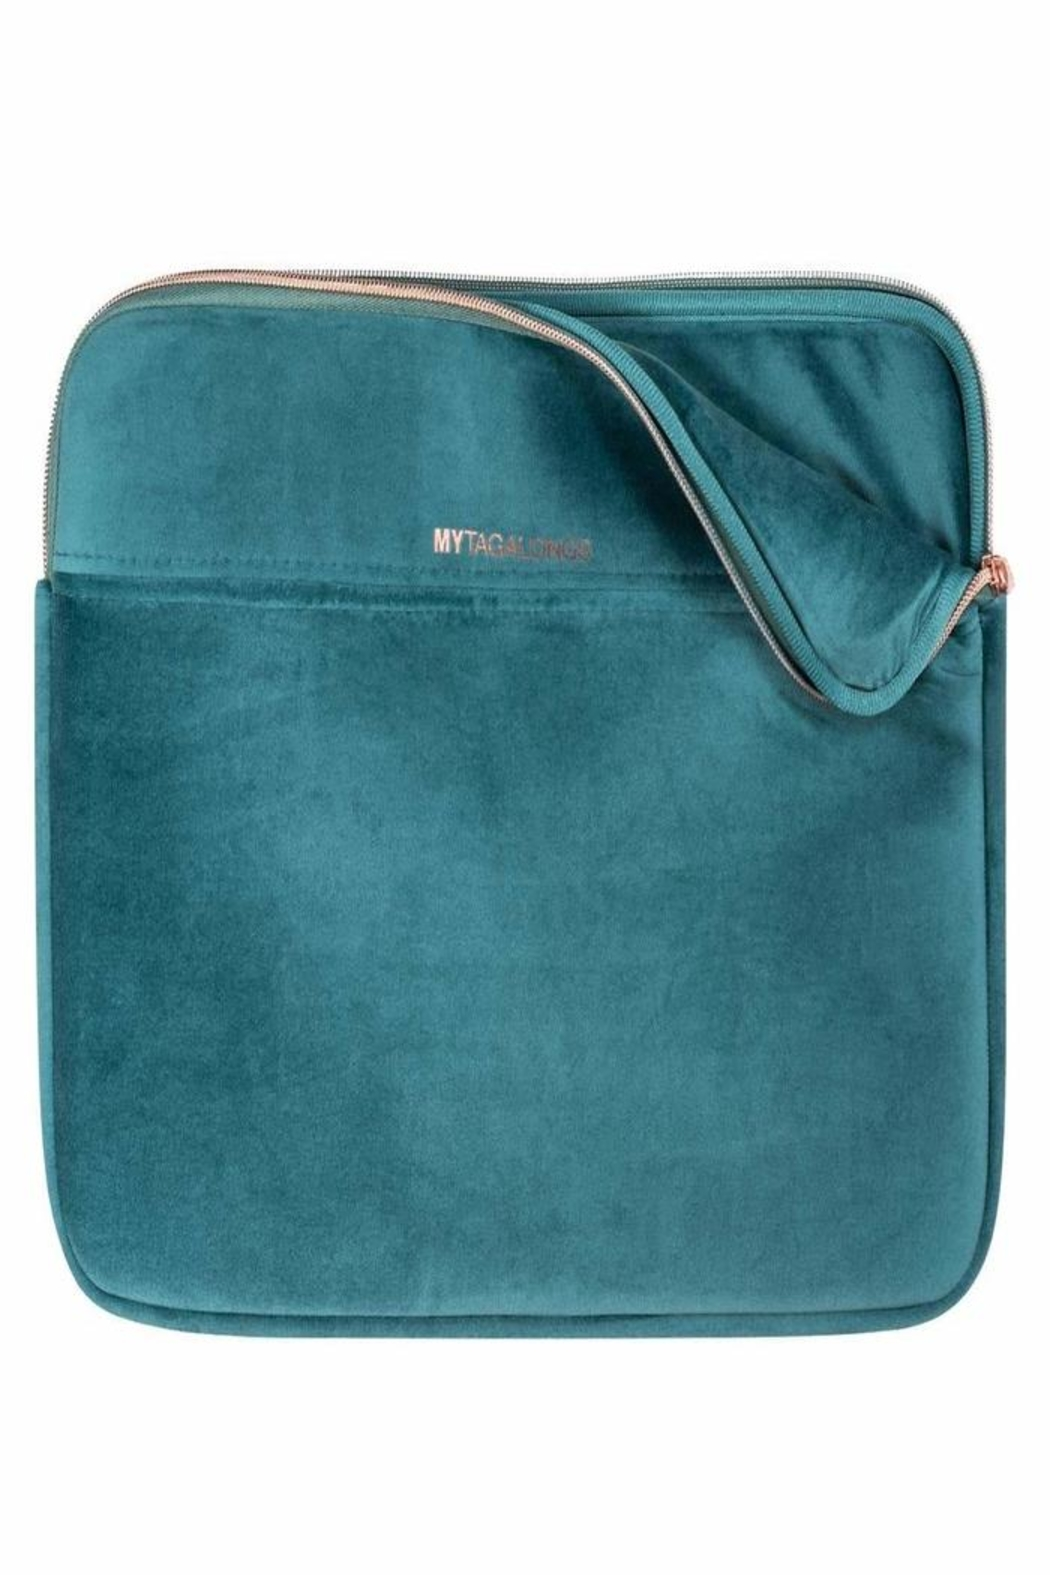 Fason De Viv Laptop Sleeve - Vixen Teal (Velour Finish) - Front Full Image